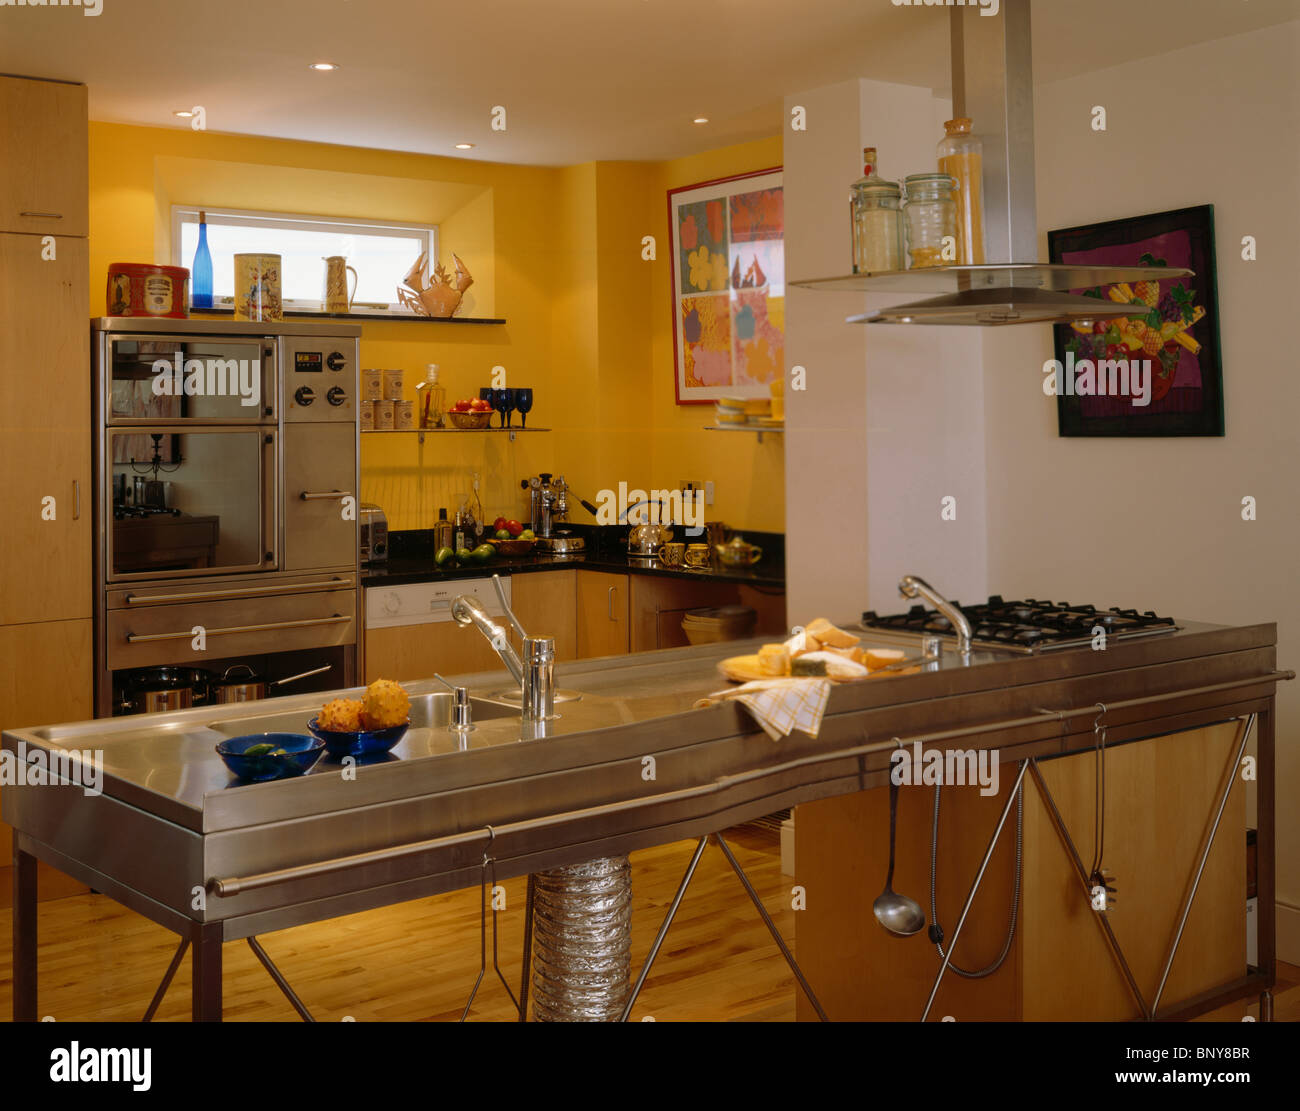 https www alamy com stock photo stainless steel freestanding double sink and hob unit in modern yellow 30717451 html